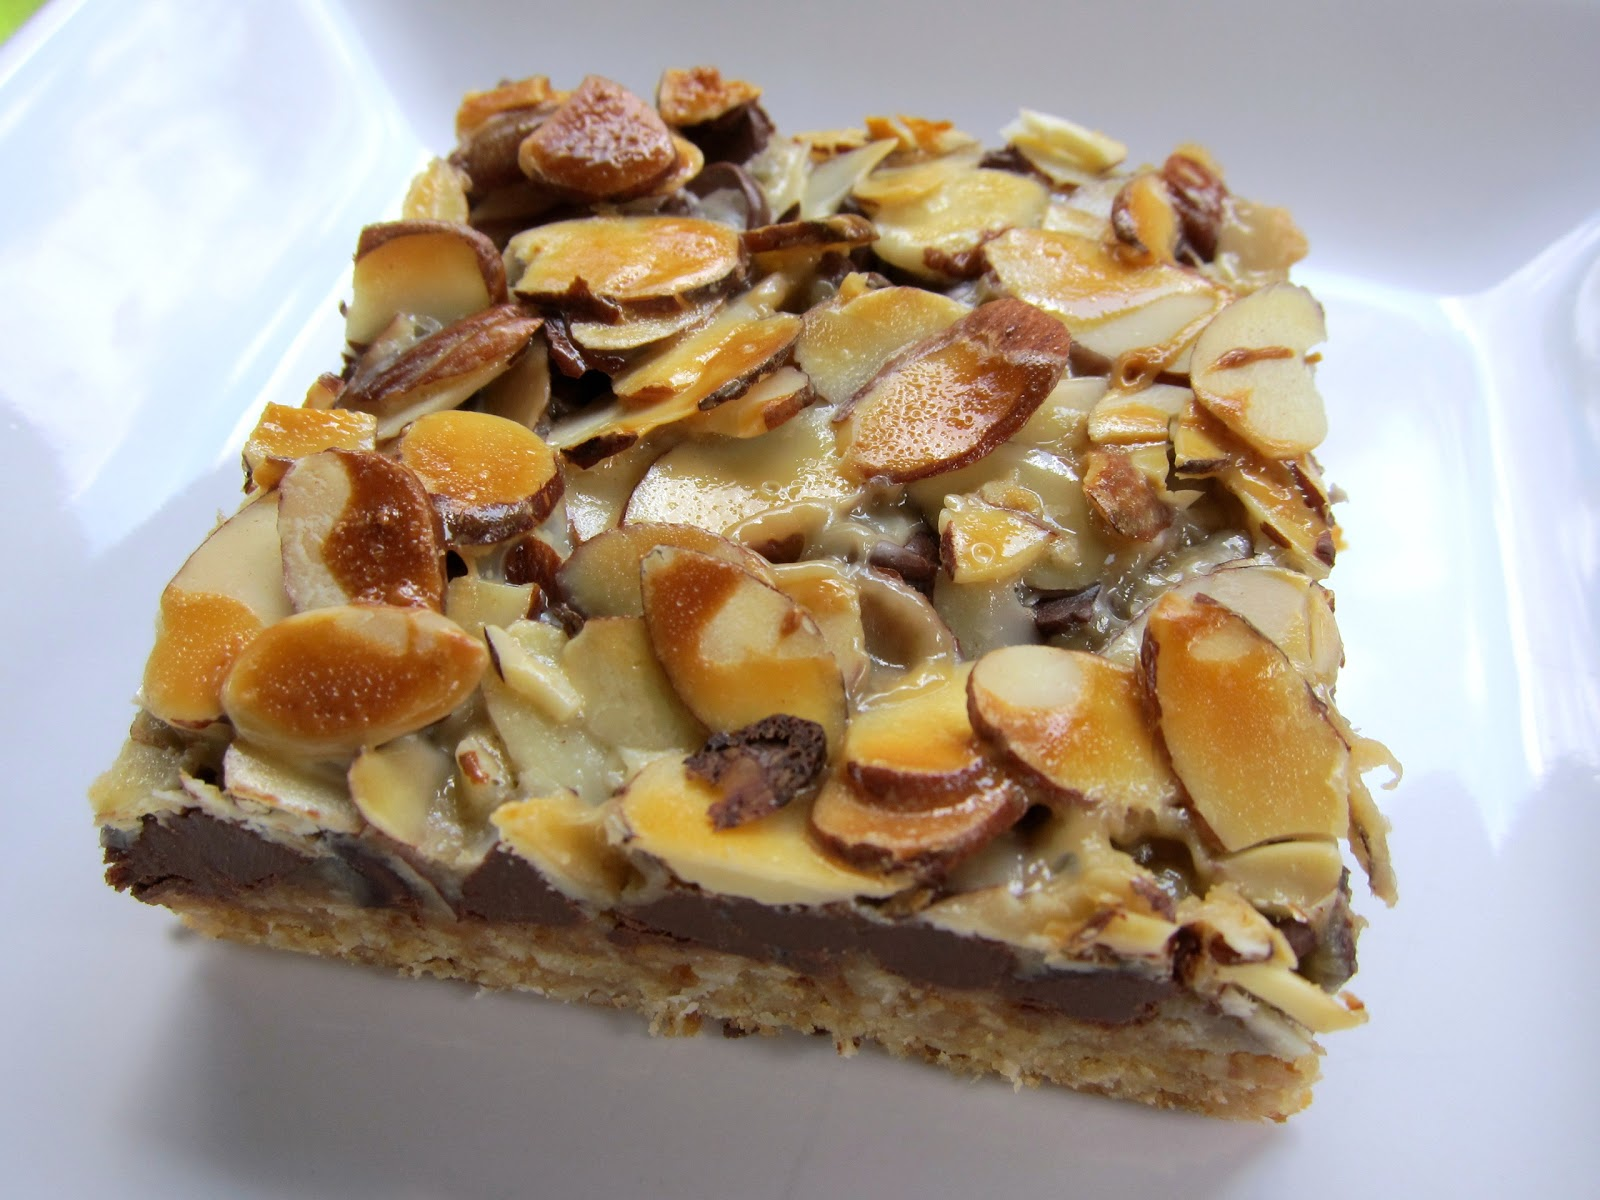 Chocolate Chip Toffee Bars With Almonds